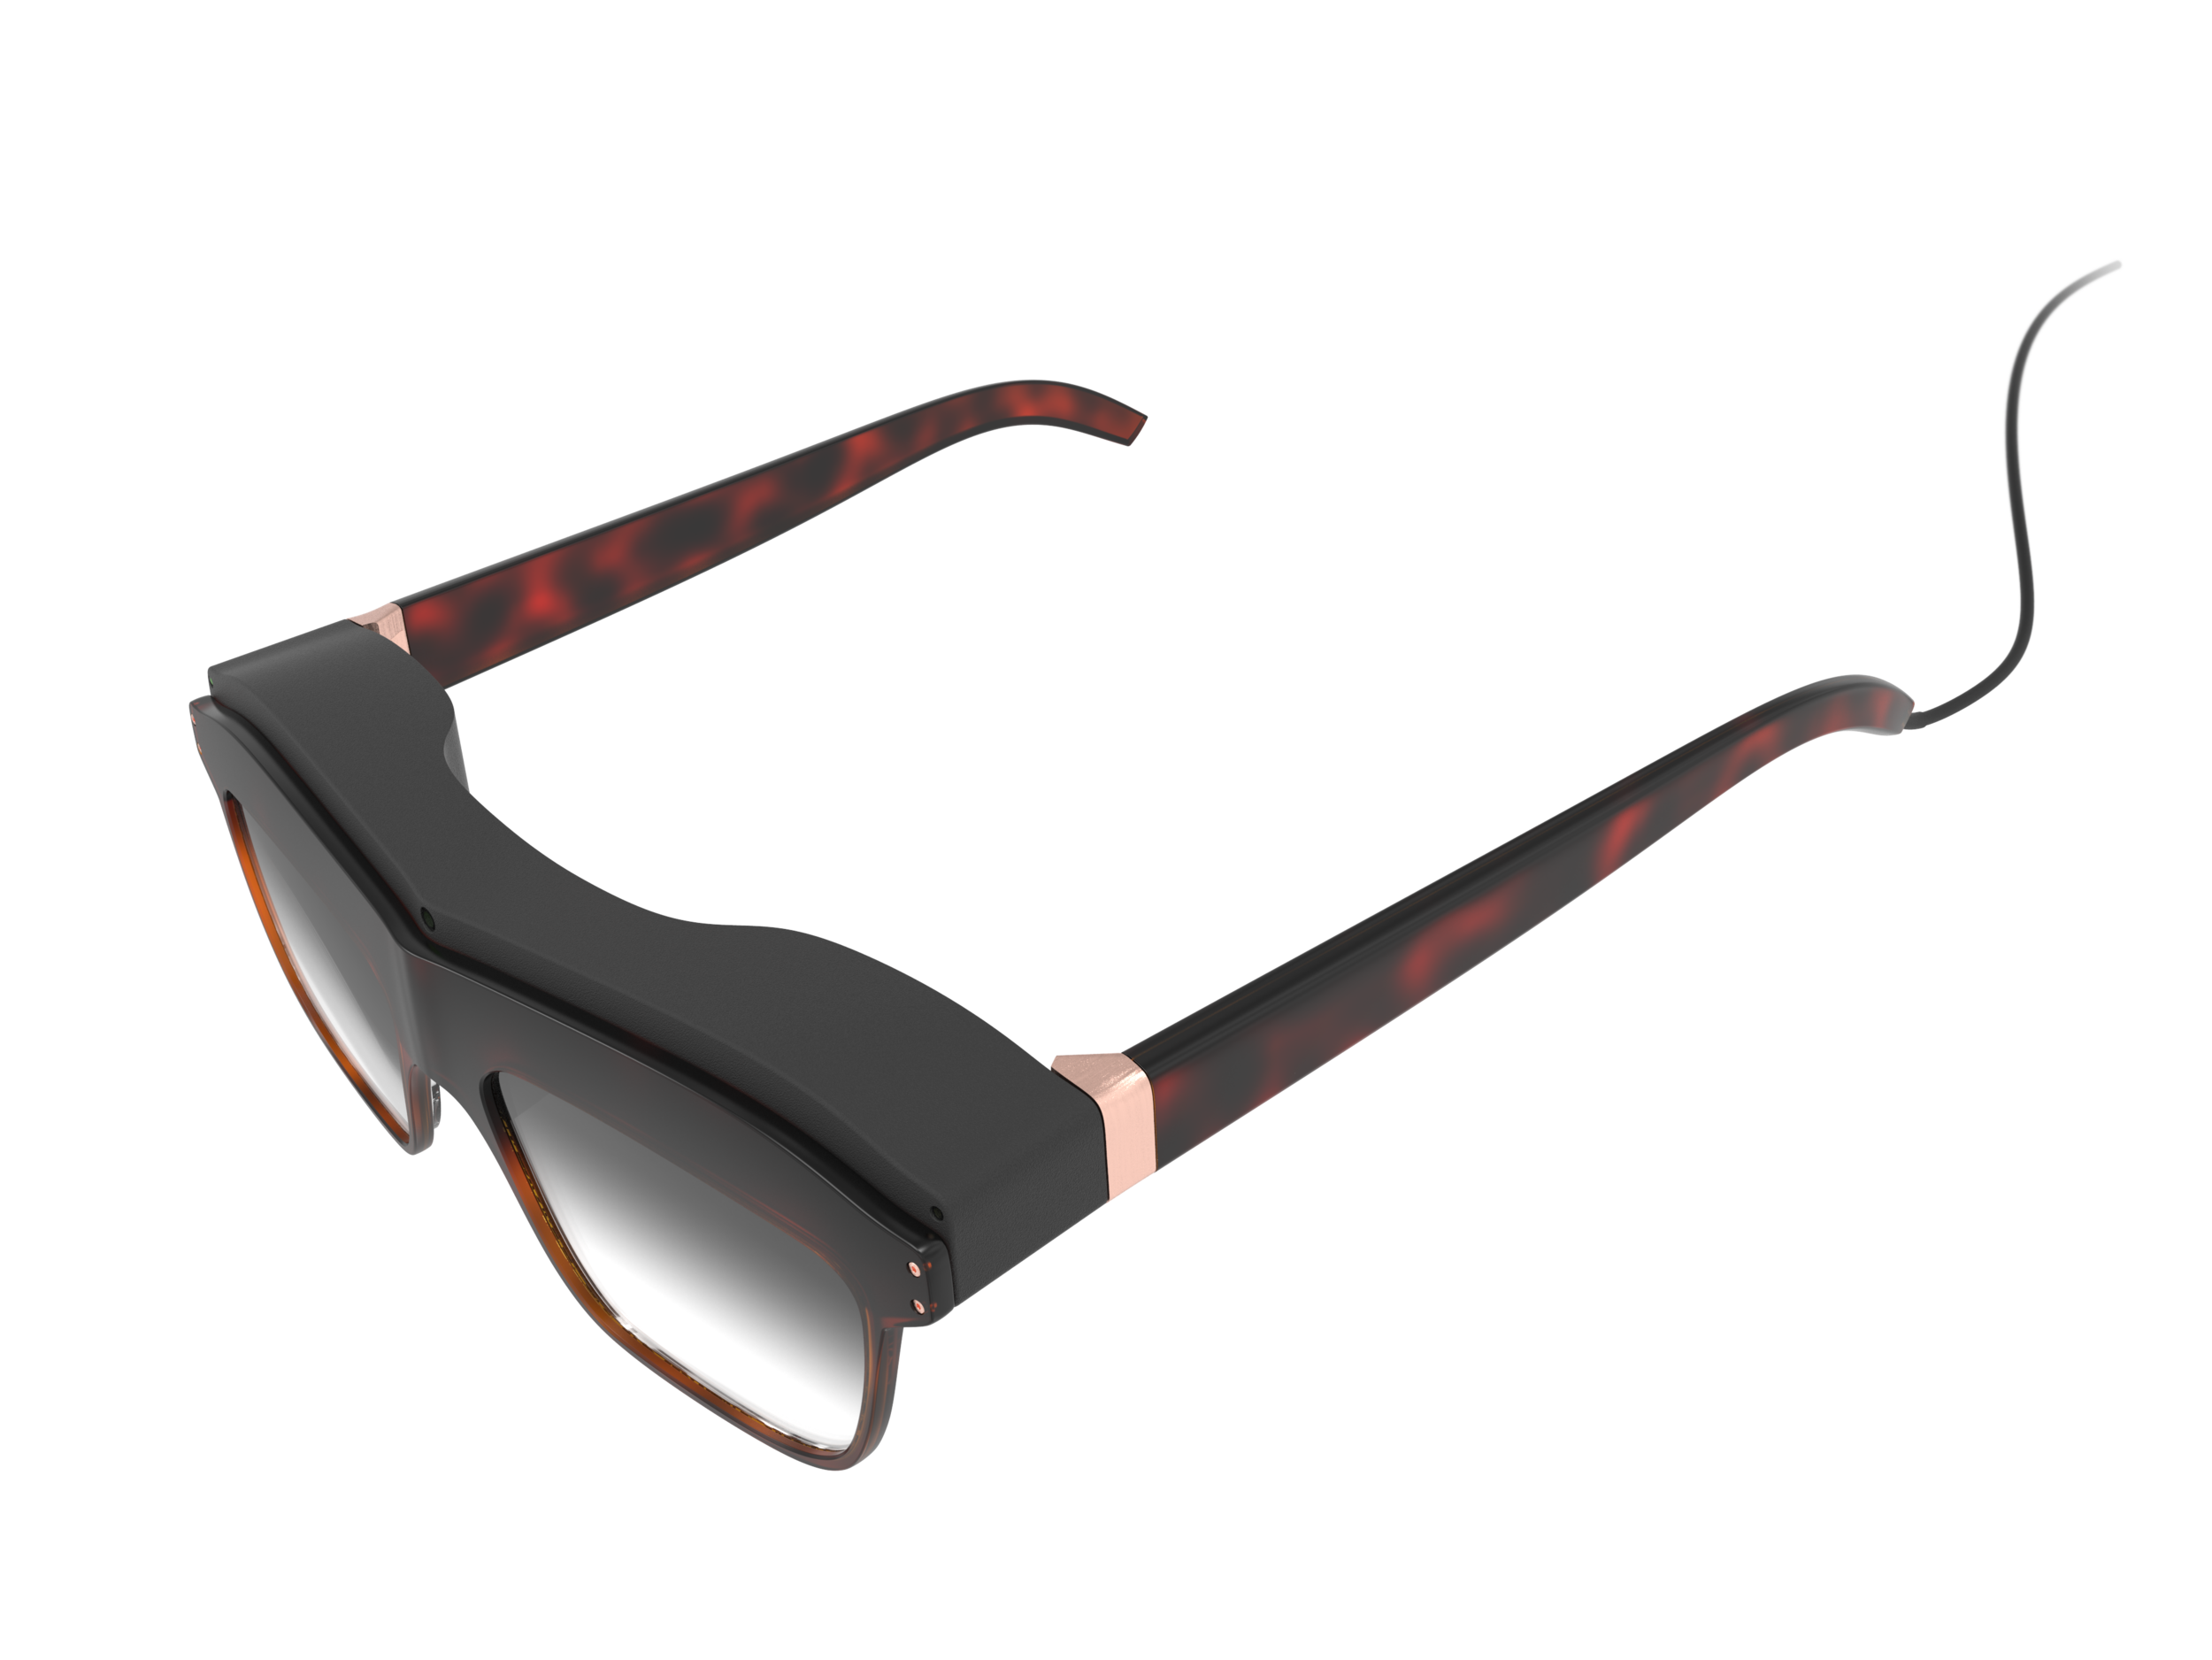 Top-side perspective view of the woman's concept design WaveOptics glasses